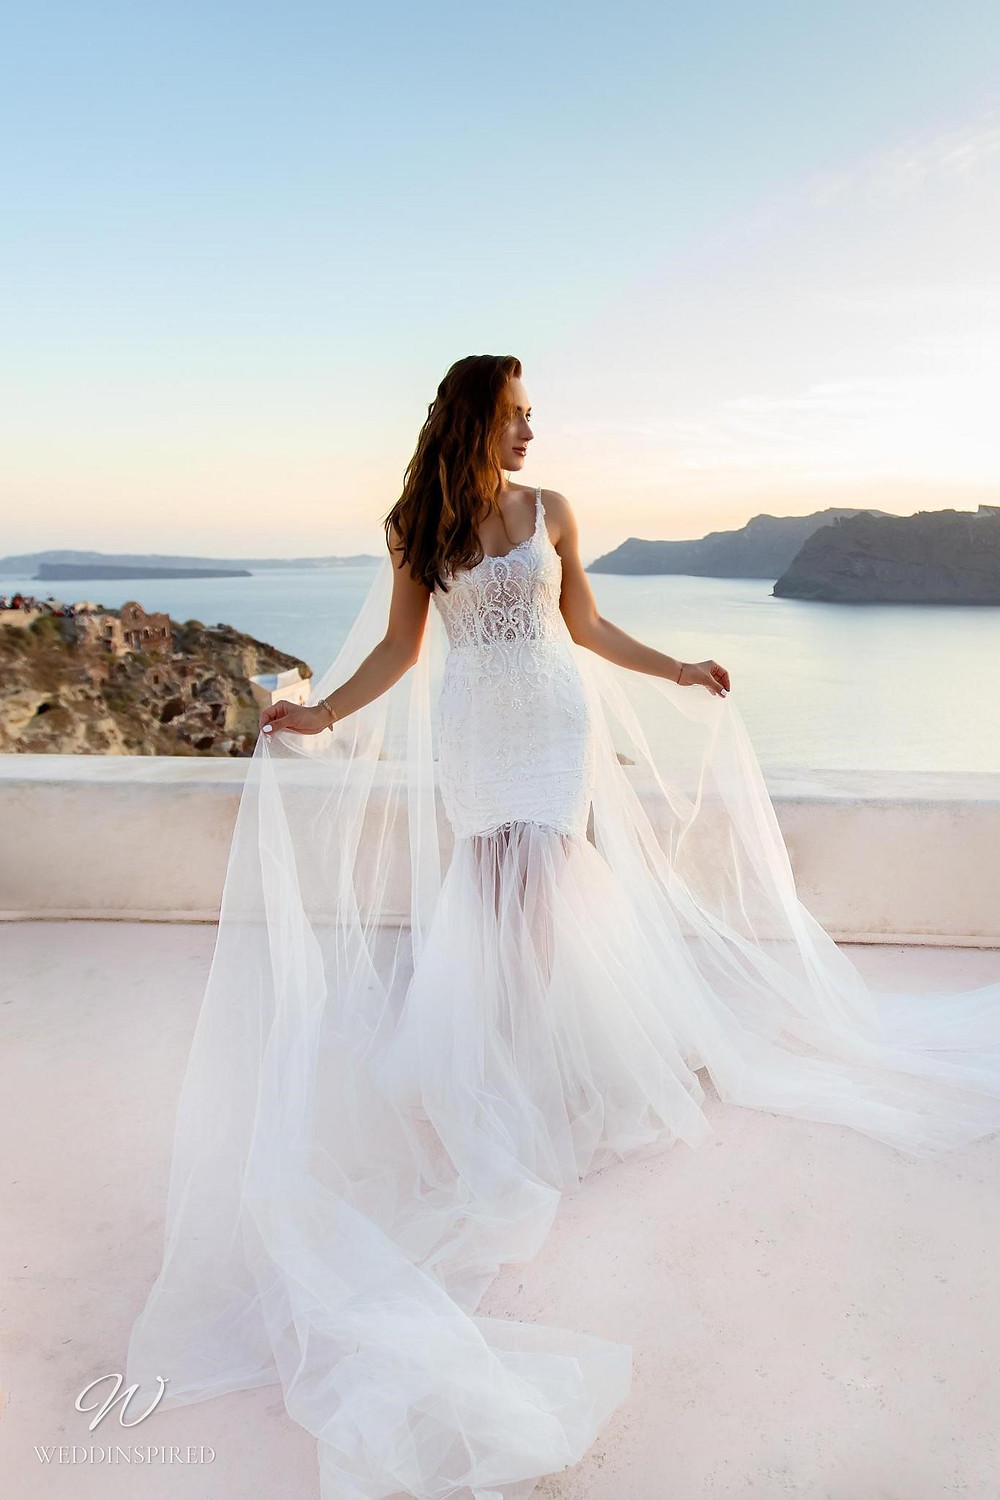 A Ricca Sposa lace mermaid wedding dress with a tulle skirt and straps